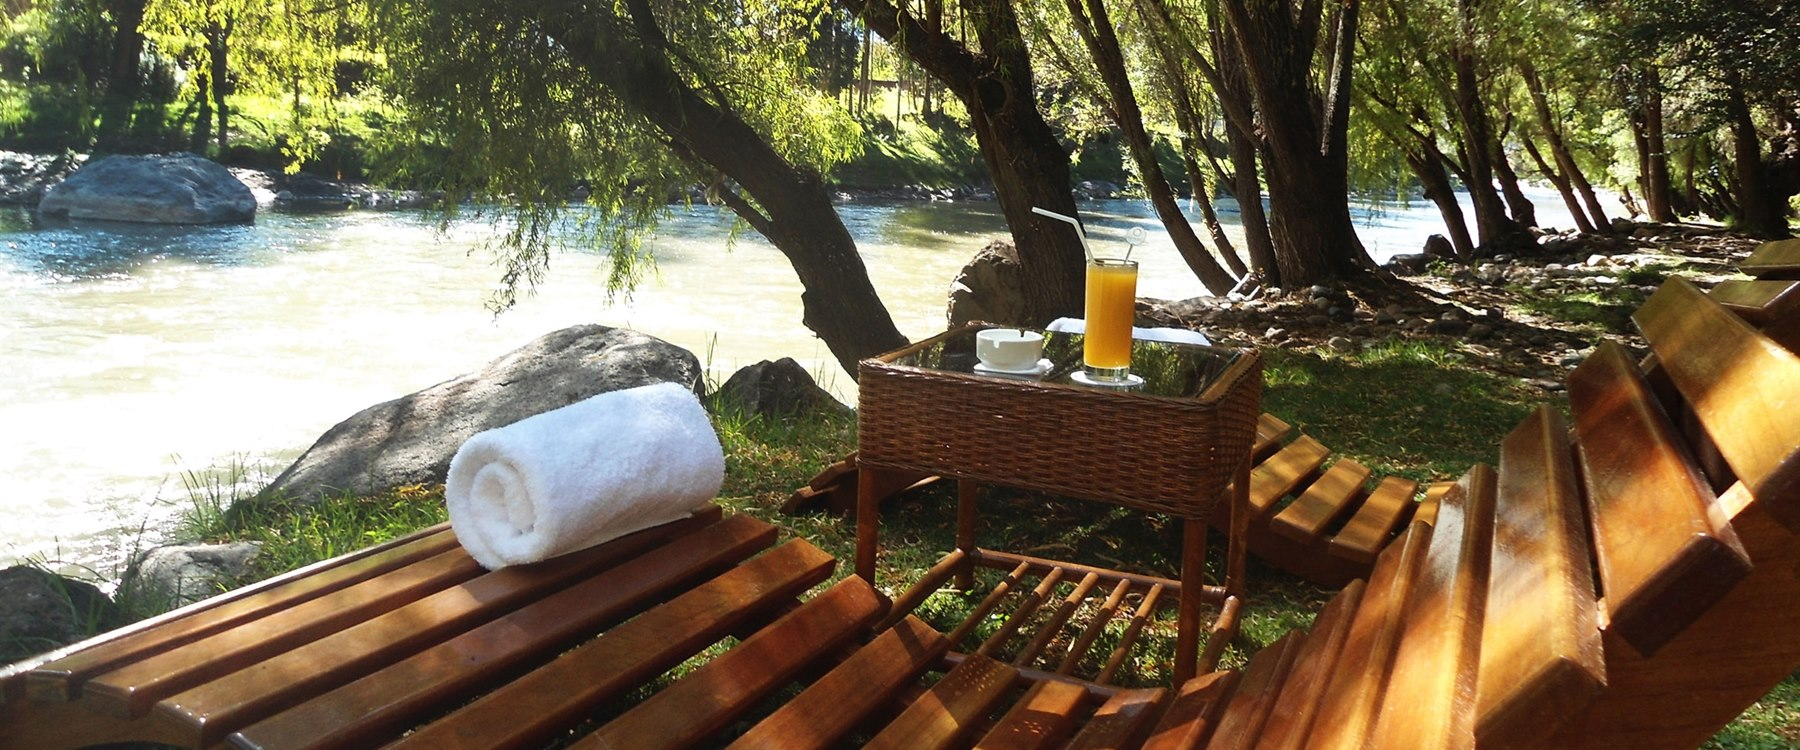 Picnic on the river, Aranwa Sacred Valley